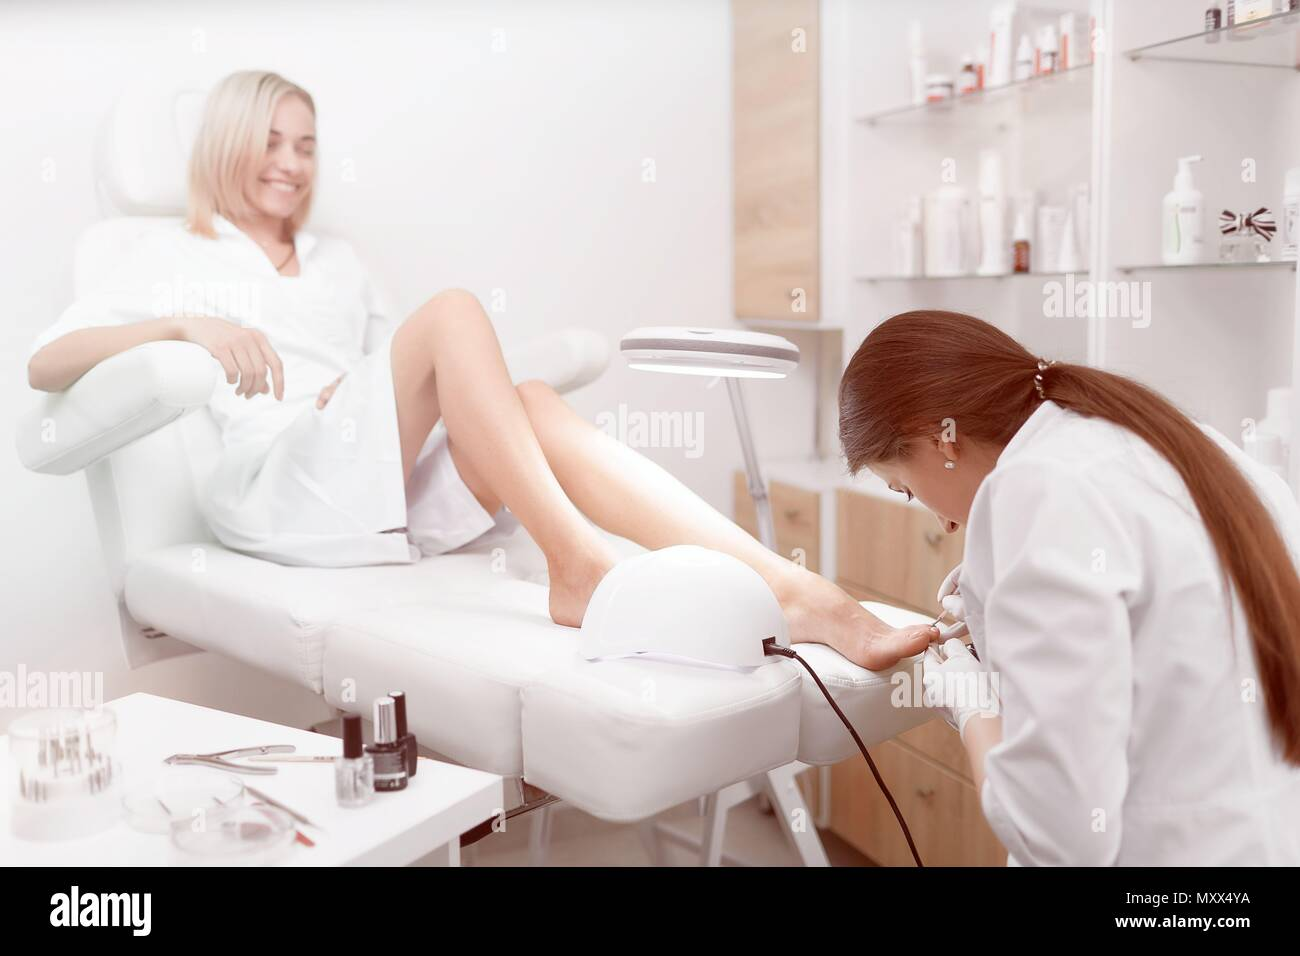 Specialist in white cleaning cuticle around nails on feet and po - Stock Image